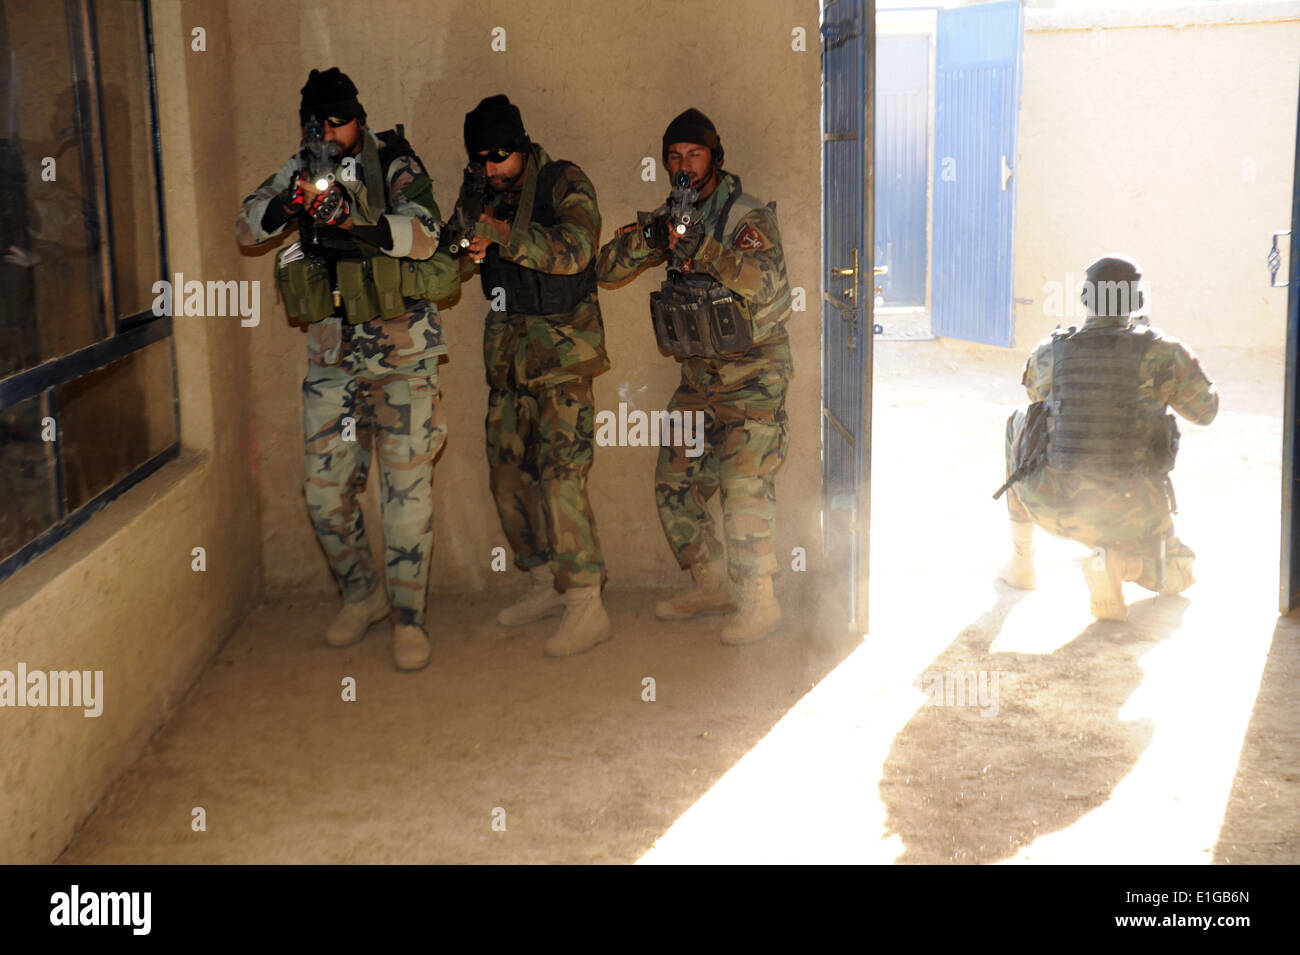 Afghan Commandos, from 3rd Company 6th Commando Kandak, rehearse room clearing techniques during close quarter battle Stock Photo